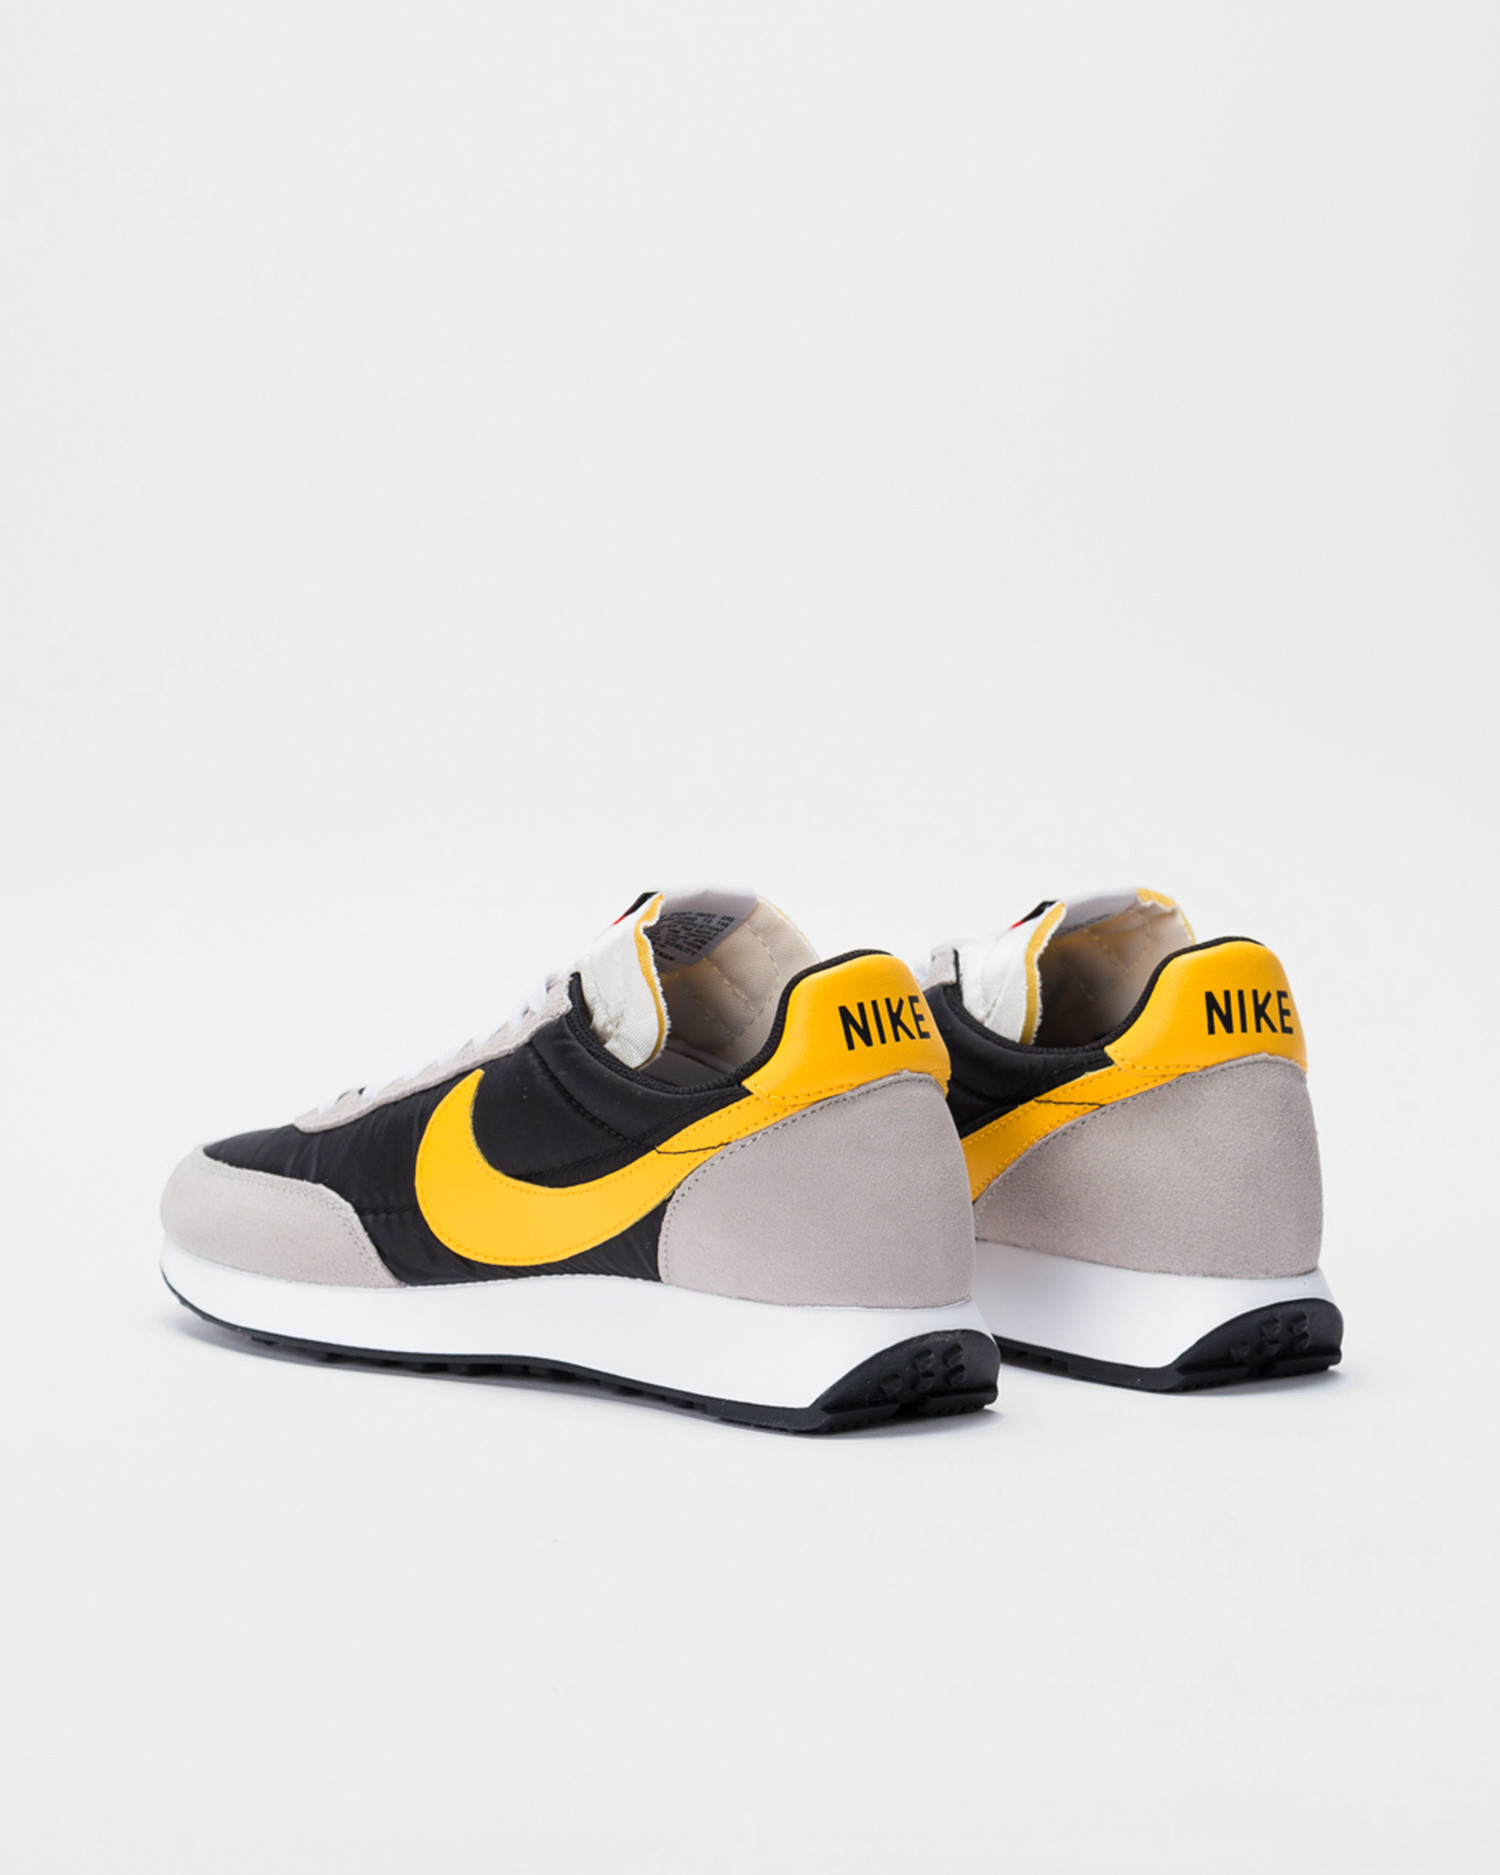 Nike Air Tailwind 79 Black/University Gold-College Grey-Sail